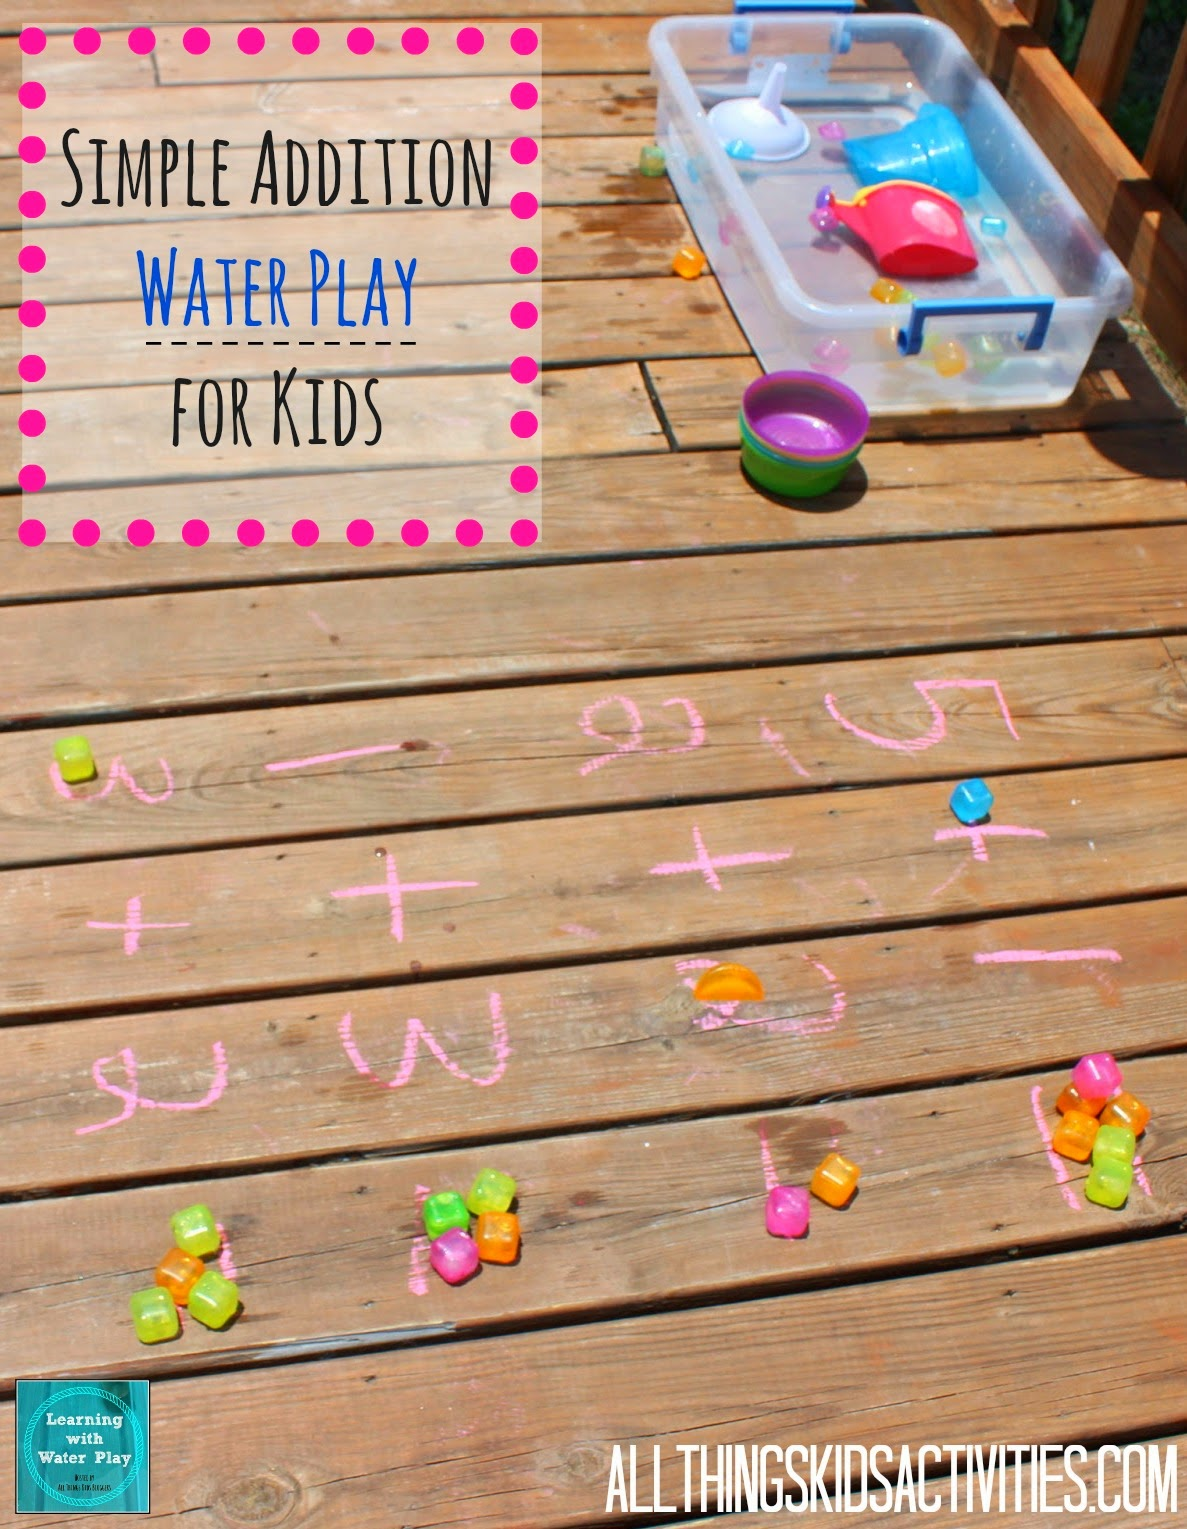 Simple Addition Water Play for Kids